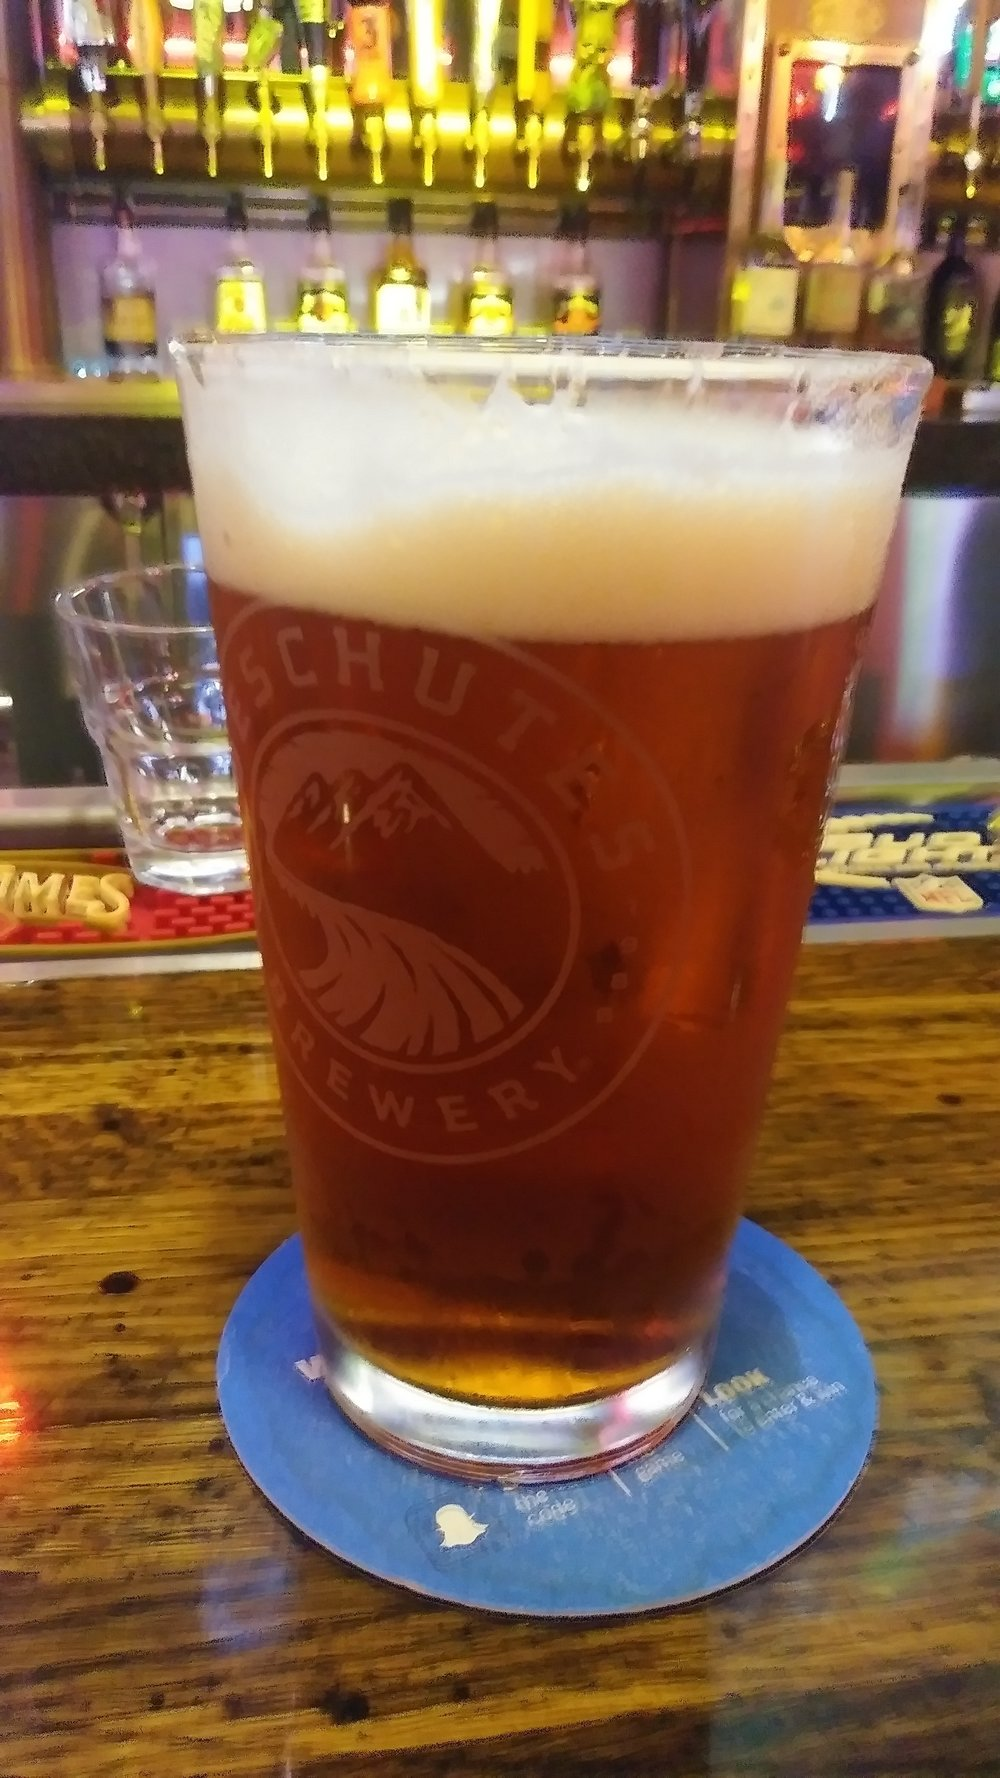 Deschutes Fresh Squeezed IPA at Oasis Southwest Grill